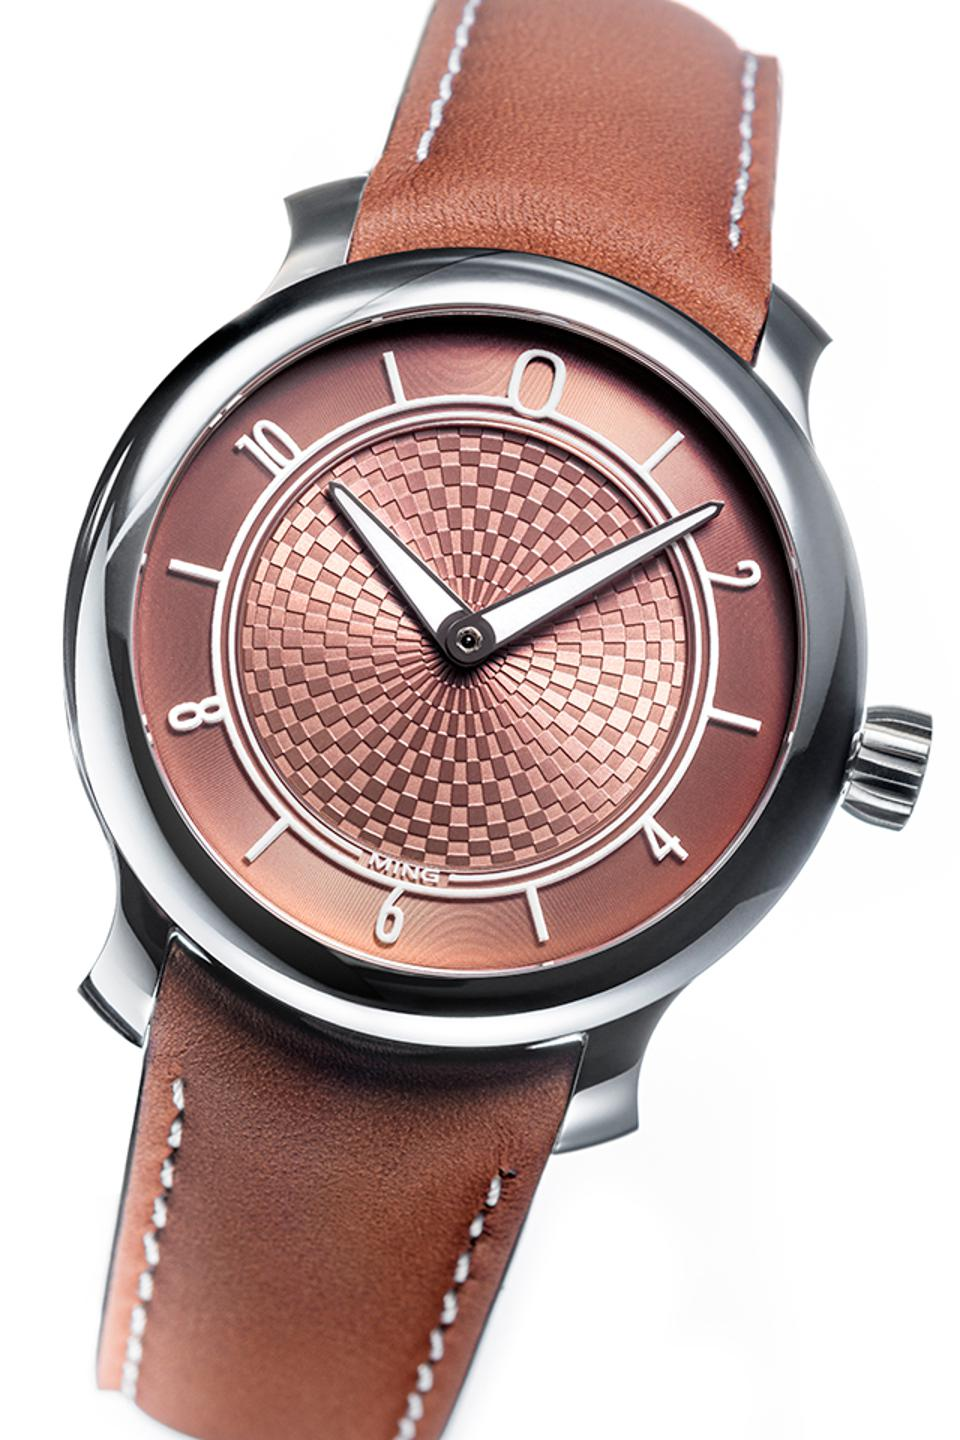 The Horological Revelation prize was awarded to Ming for the 17.06 Copper, with a striking etched copper dial and hand coated in Super-LumiNova.